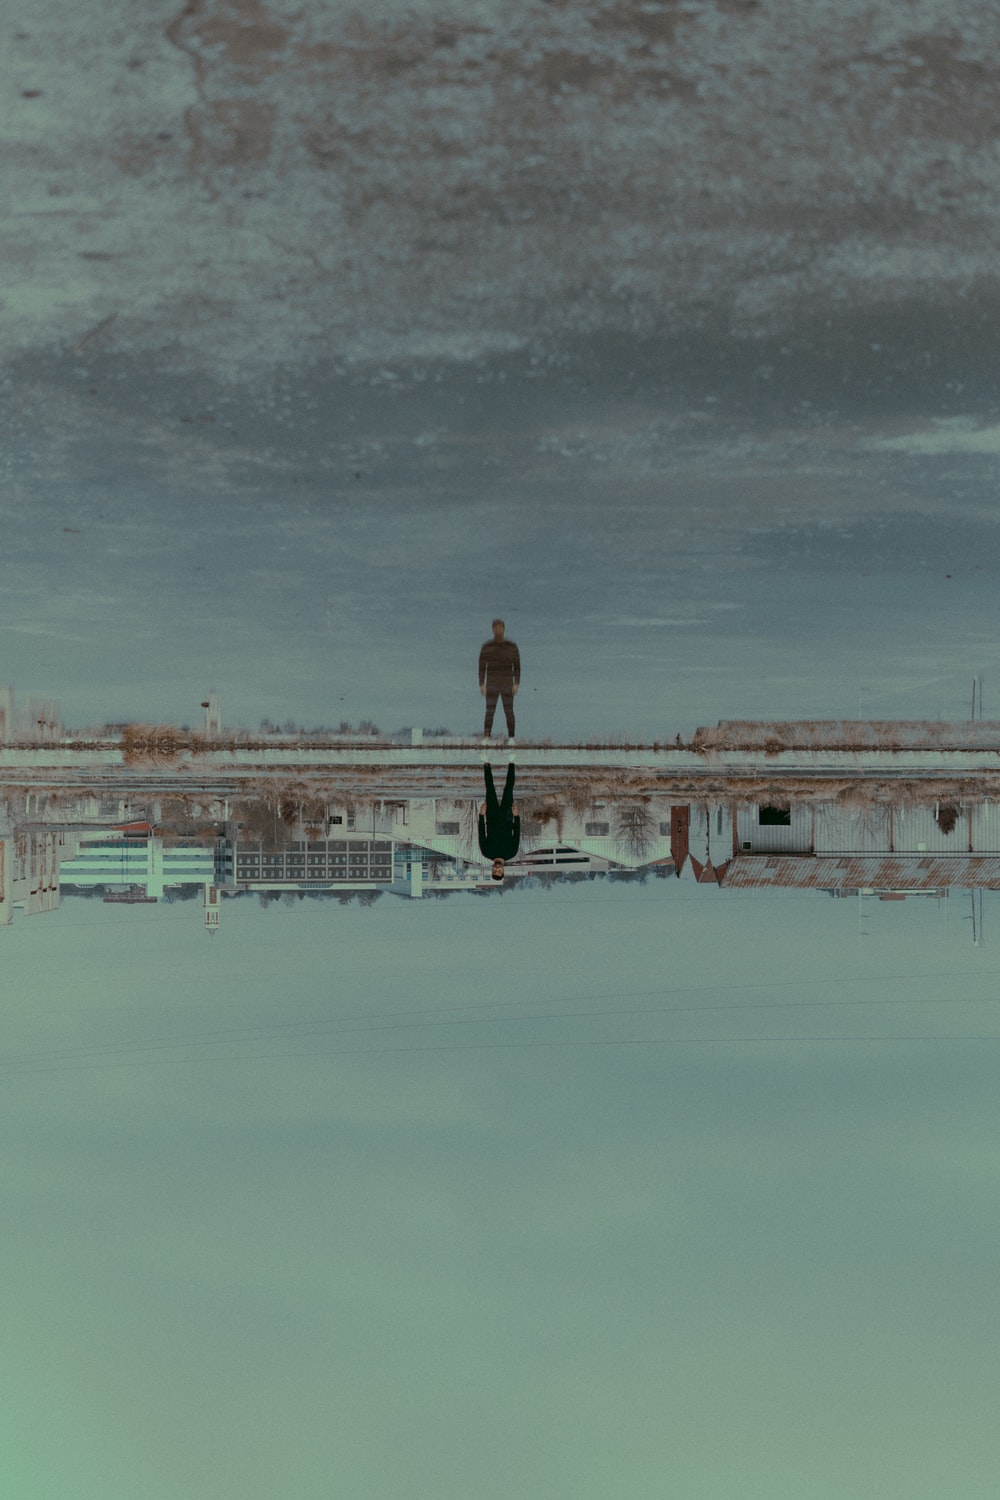 person in black long-sleeved shirt standing in front of body of water under cloudy sky